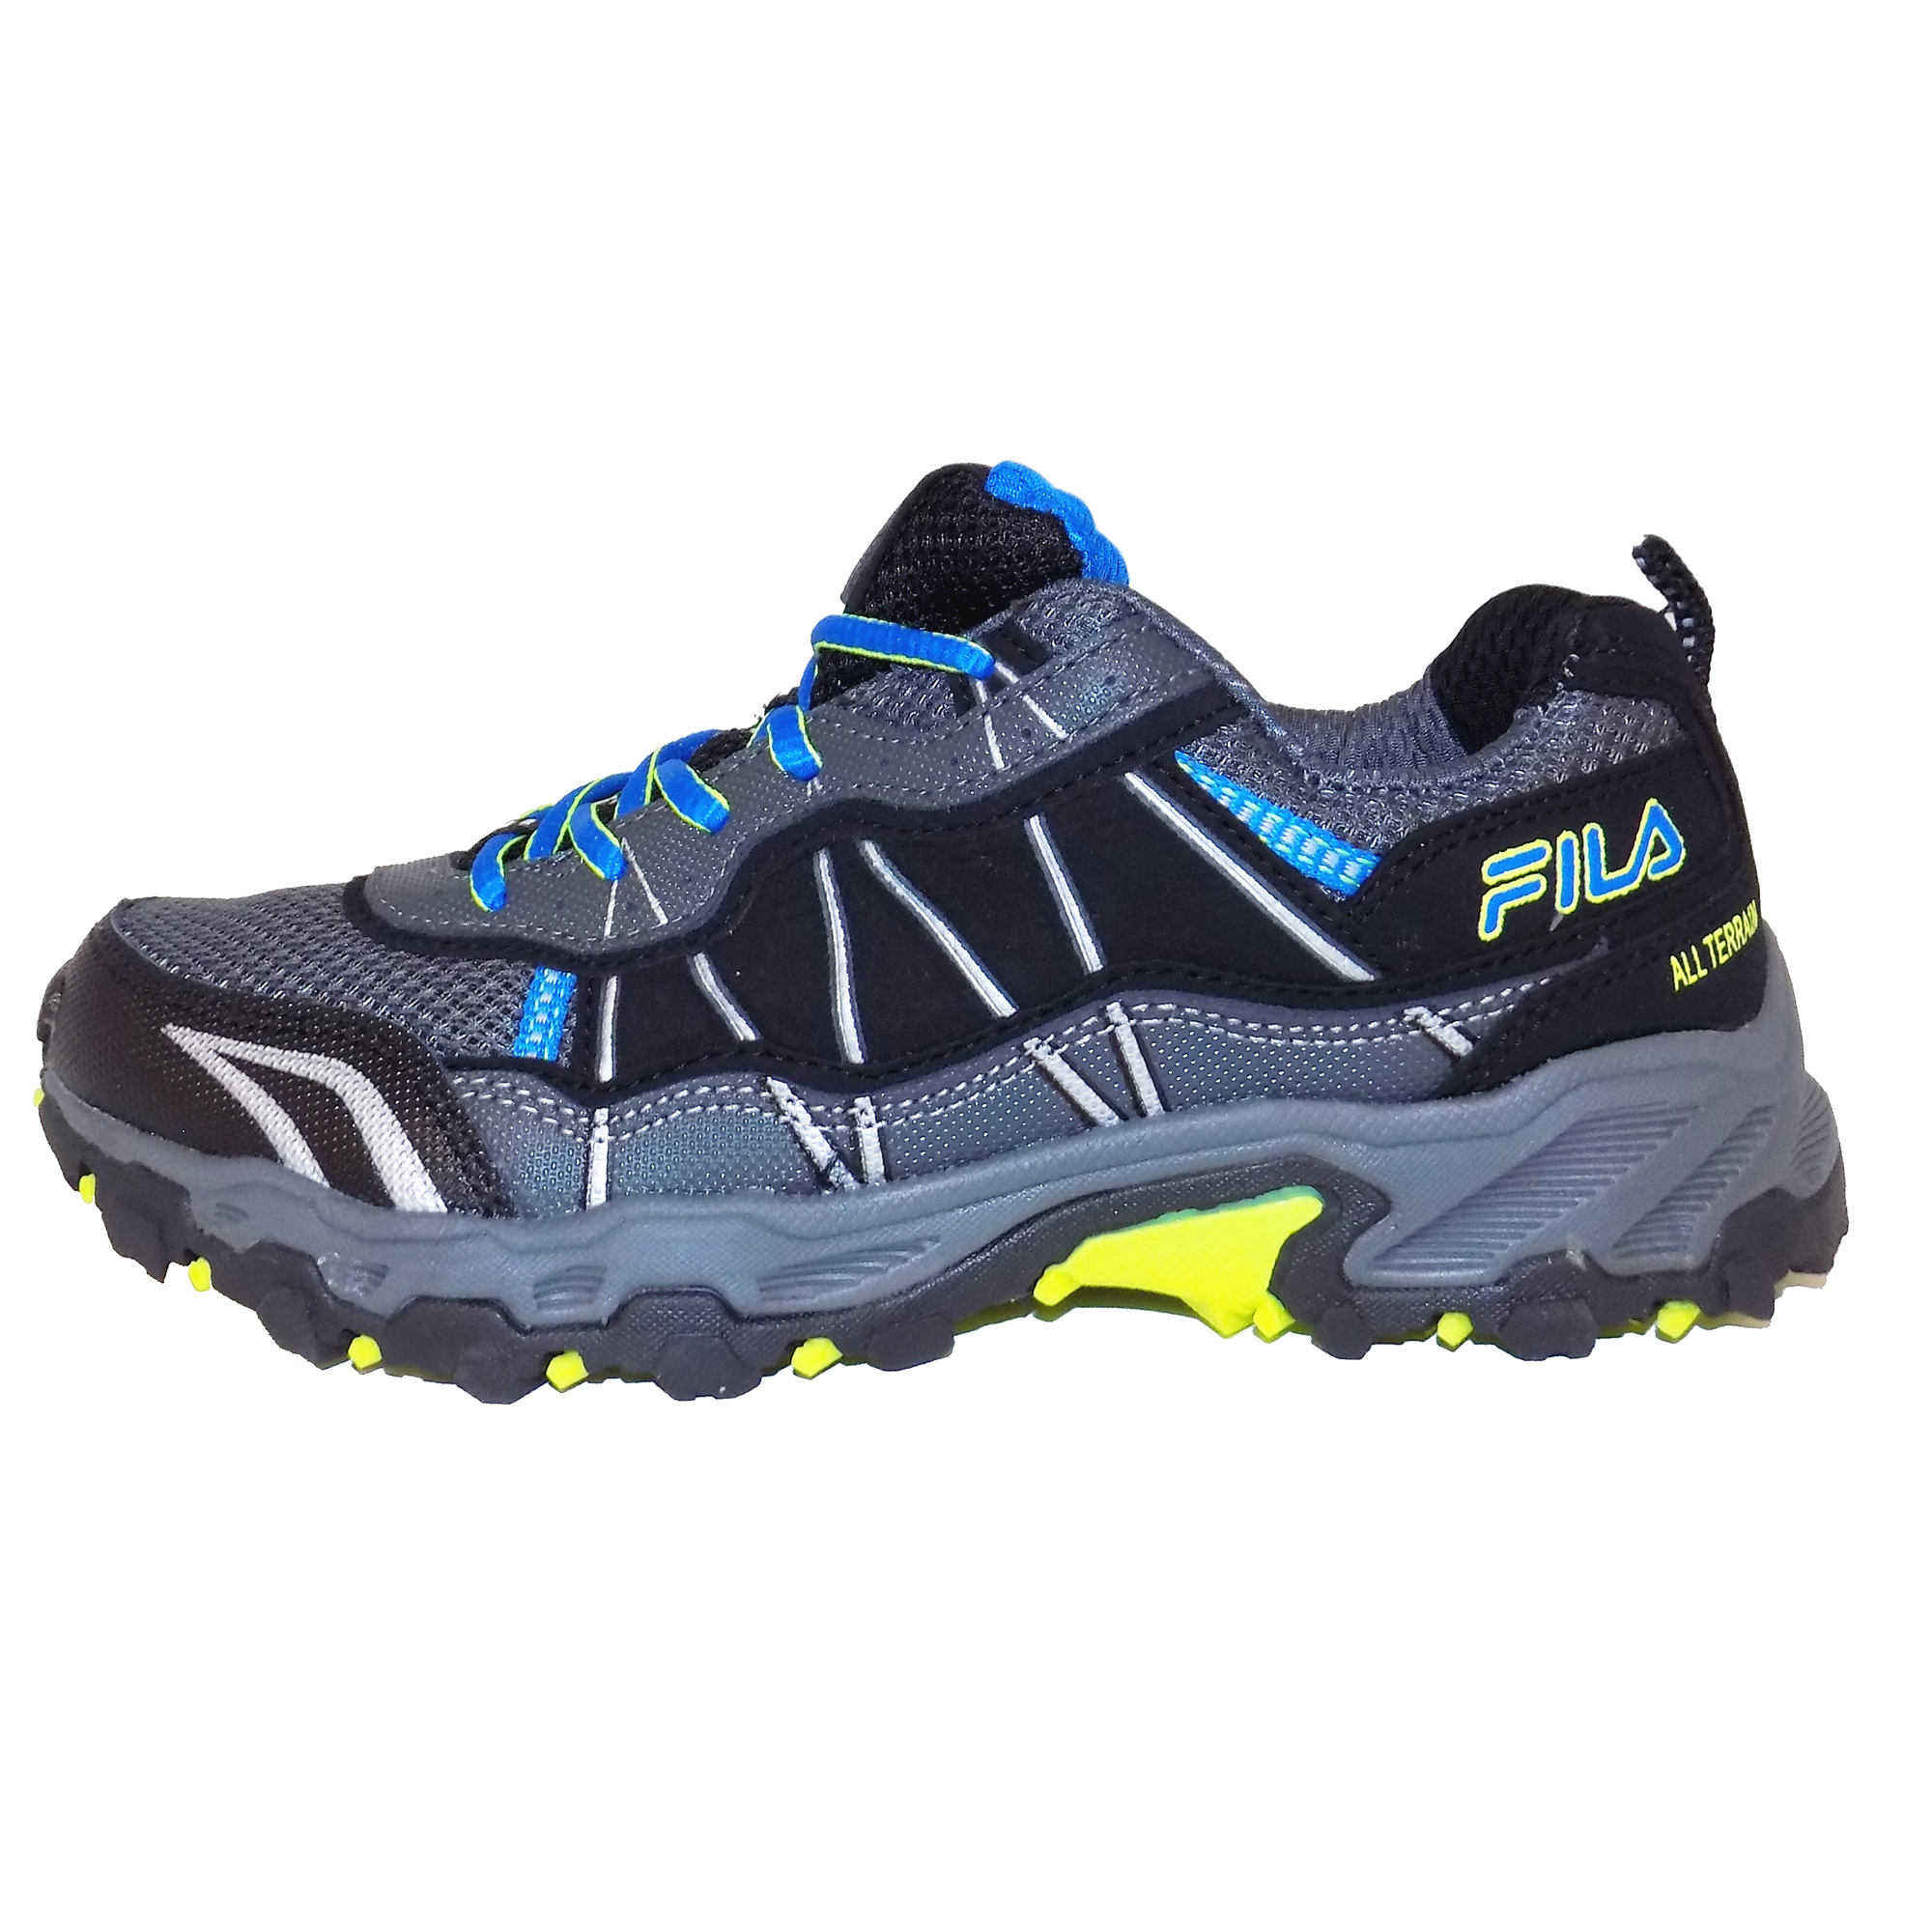 Shoes Black Sneaker Tractile 2 Leather Kids Hiking Top Fila Low Gray EtpqS